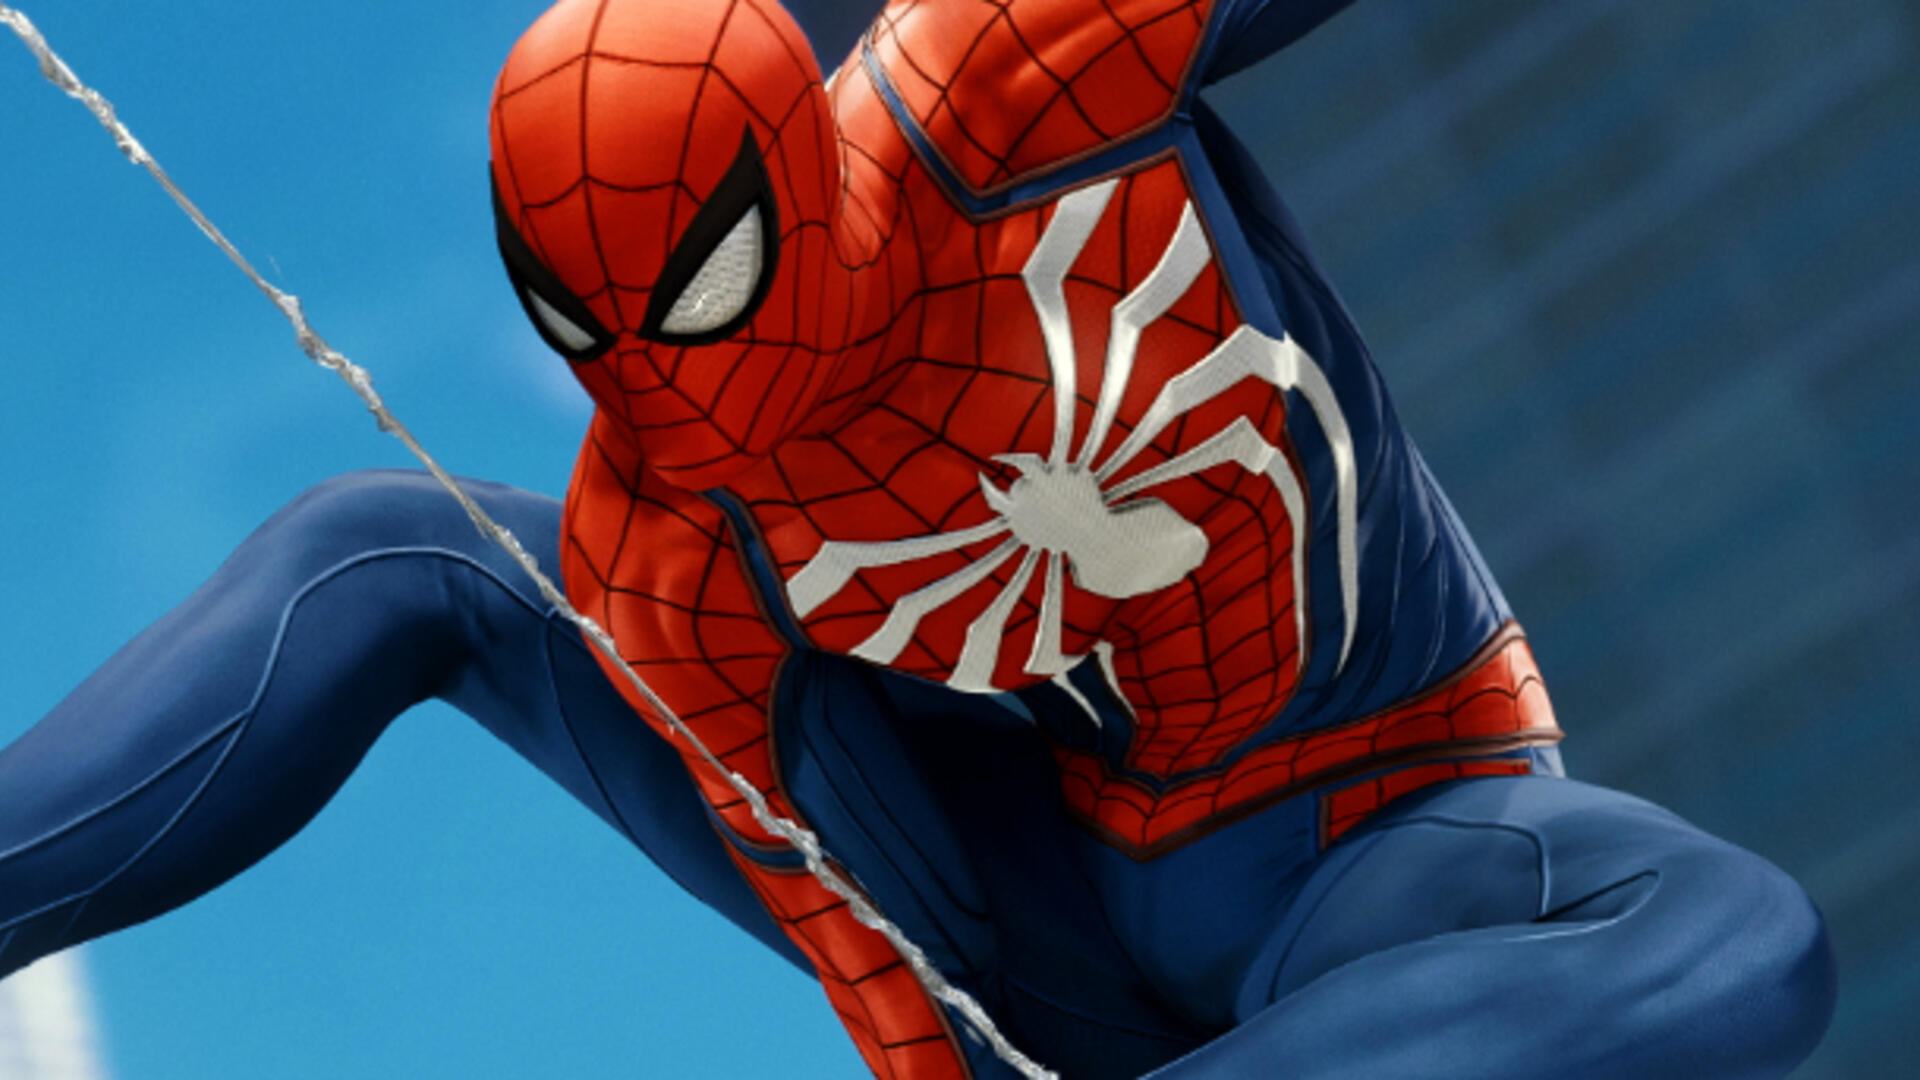 Spider Man PS4 Easter Eggs Locations: All the Best Hidden Secrets